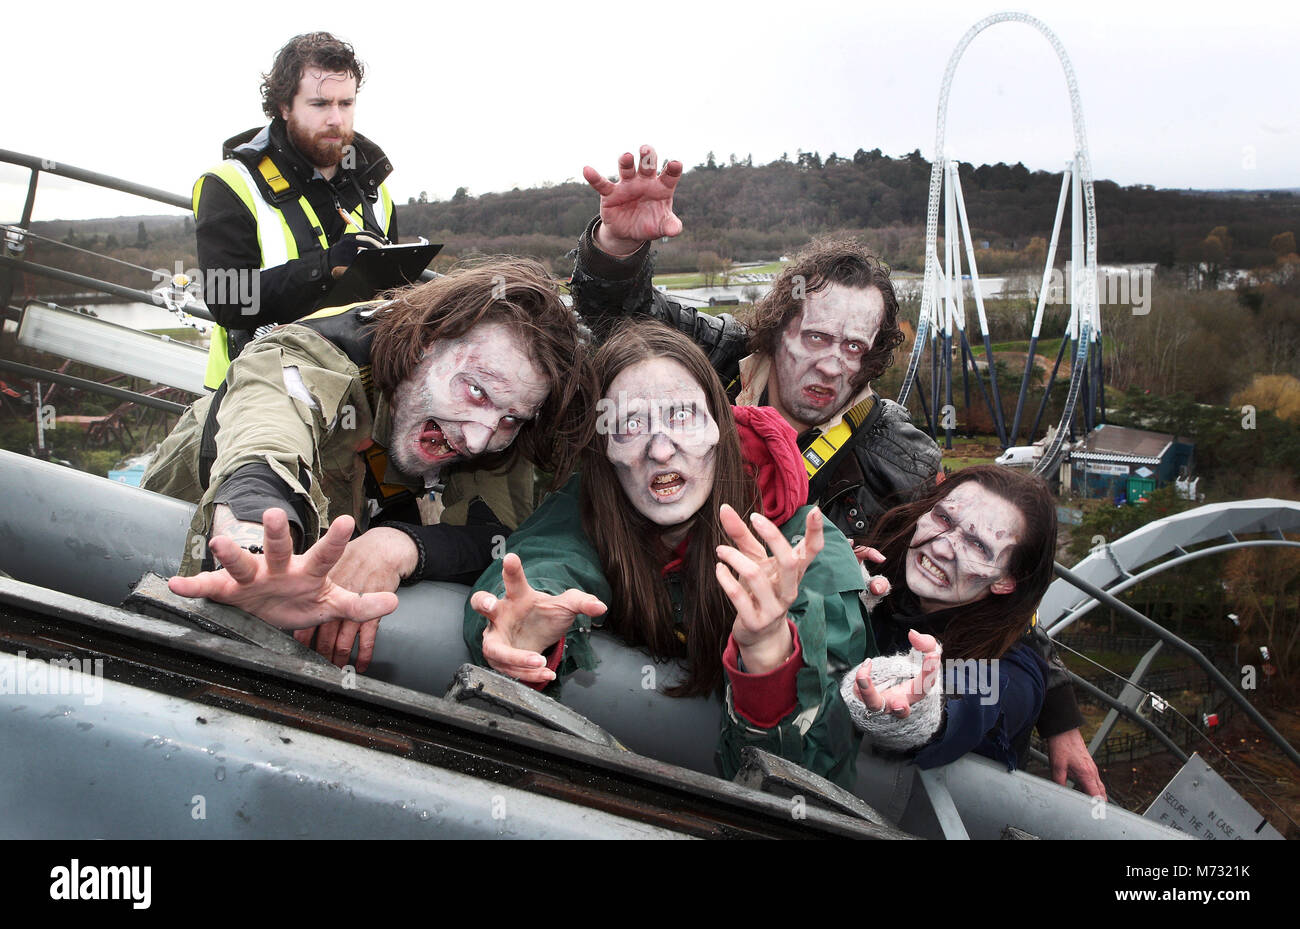 *** EMBARGOED TO 0001 Tuesday February 6 *** Scare actor candidates are auditioned at 127 feet in the air on The - Stock Image